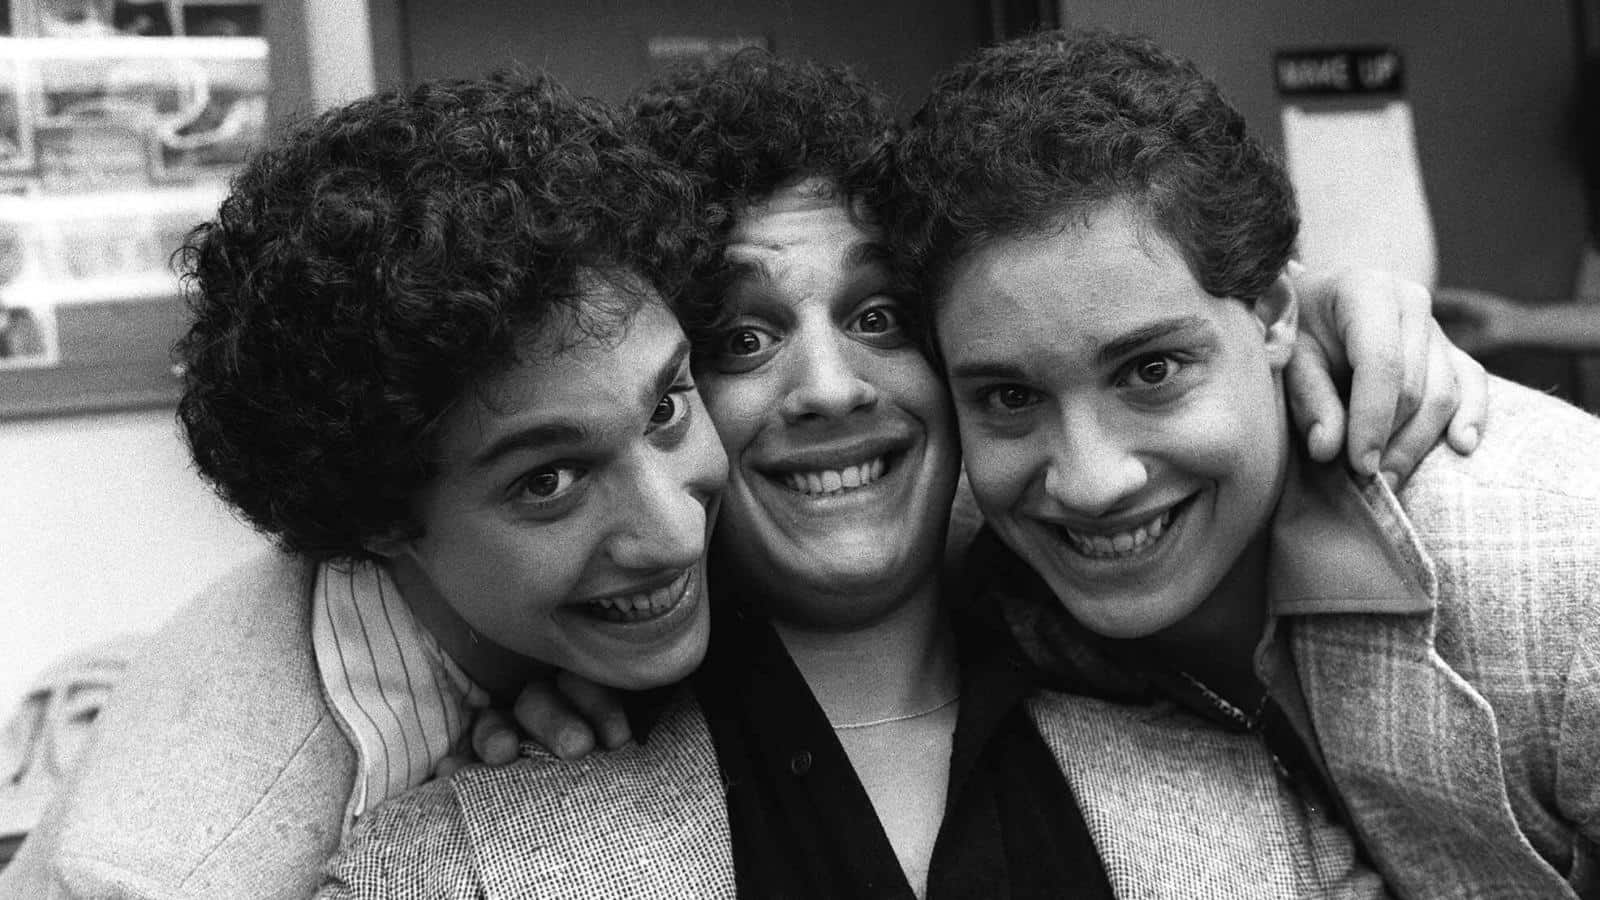 Best Indie FIlms - Three Identical Strangers - StudioBinder